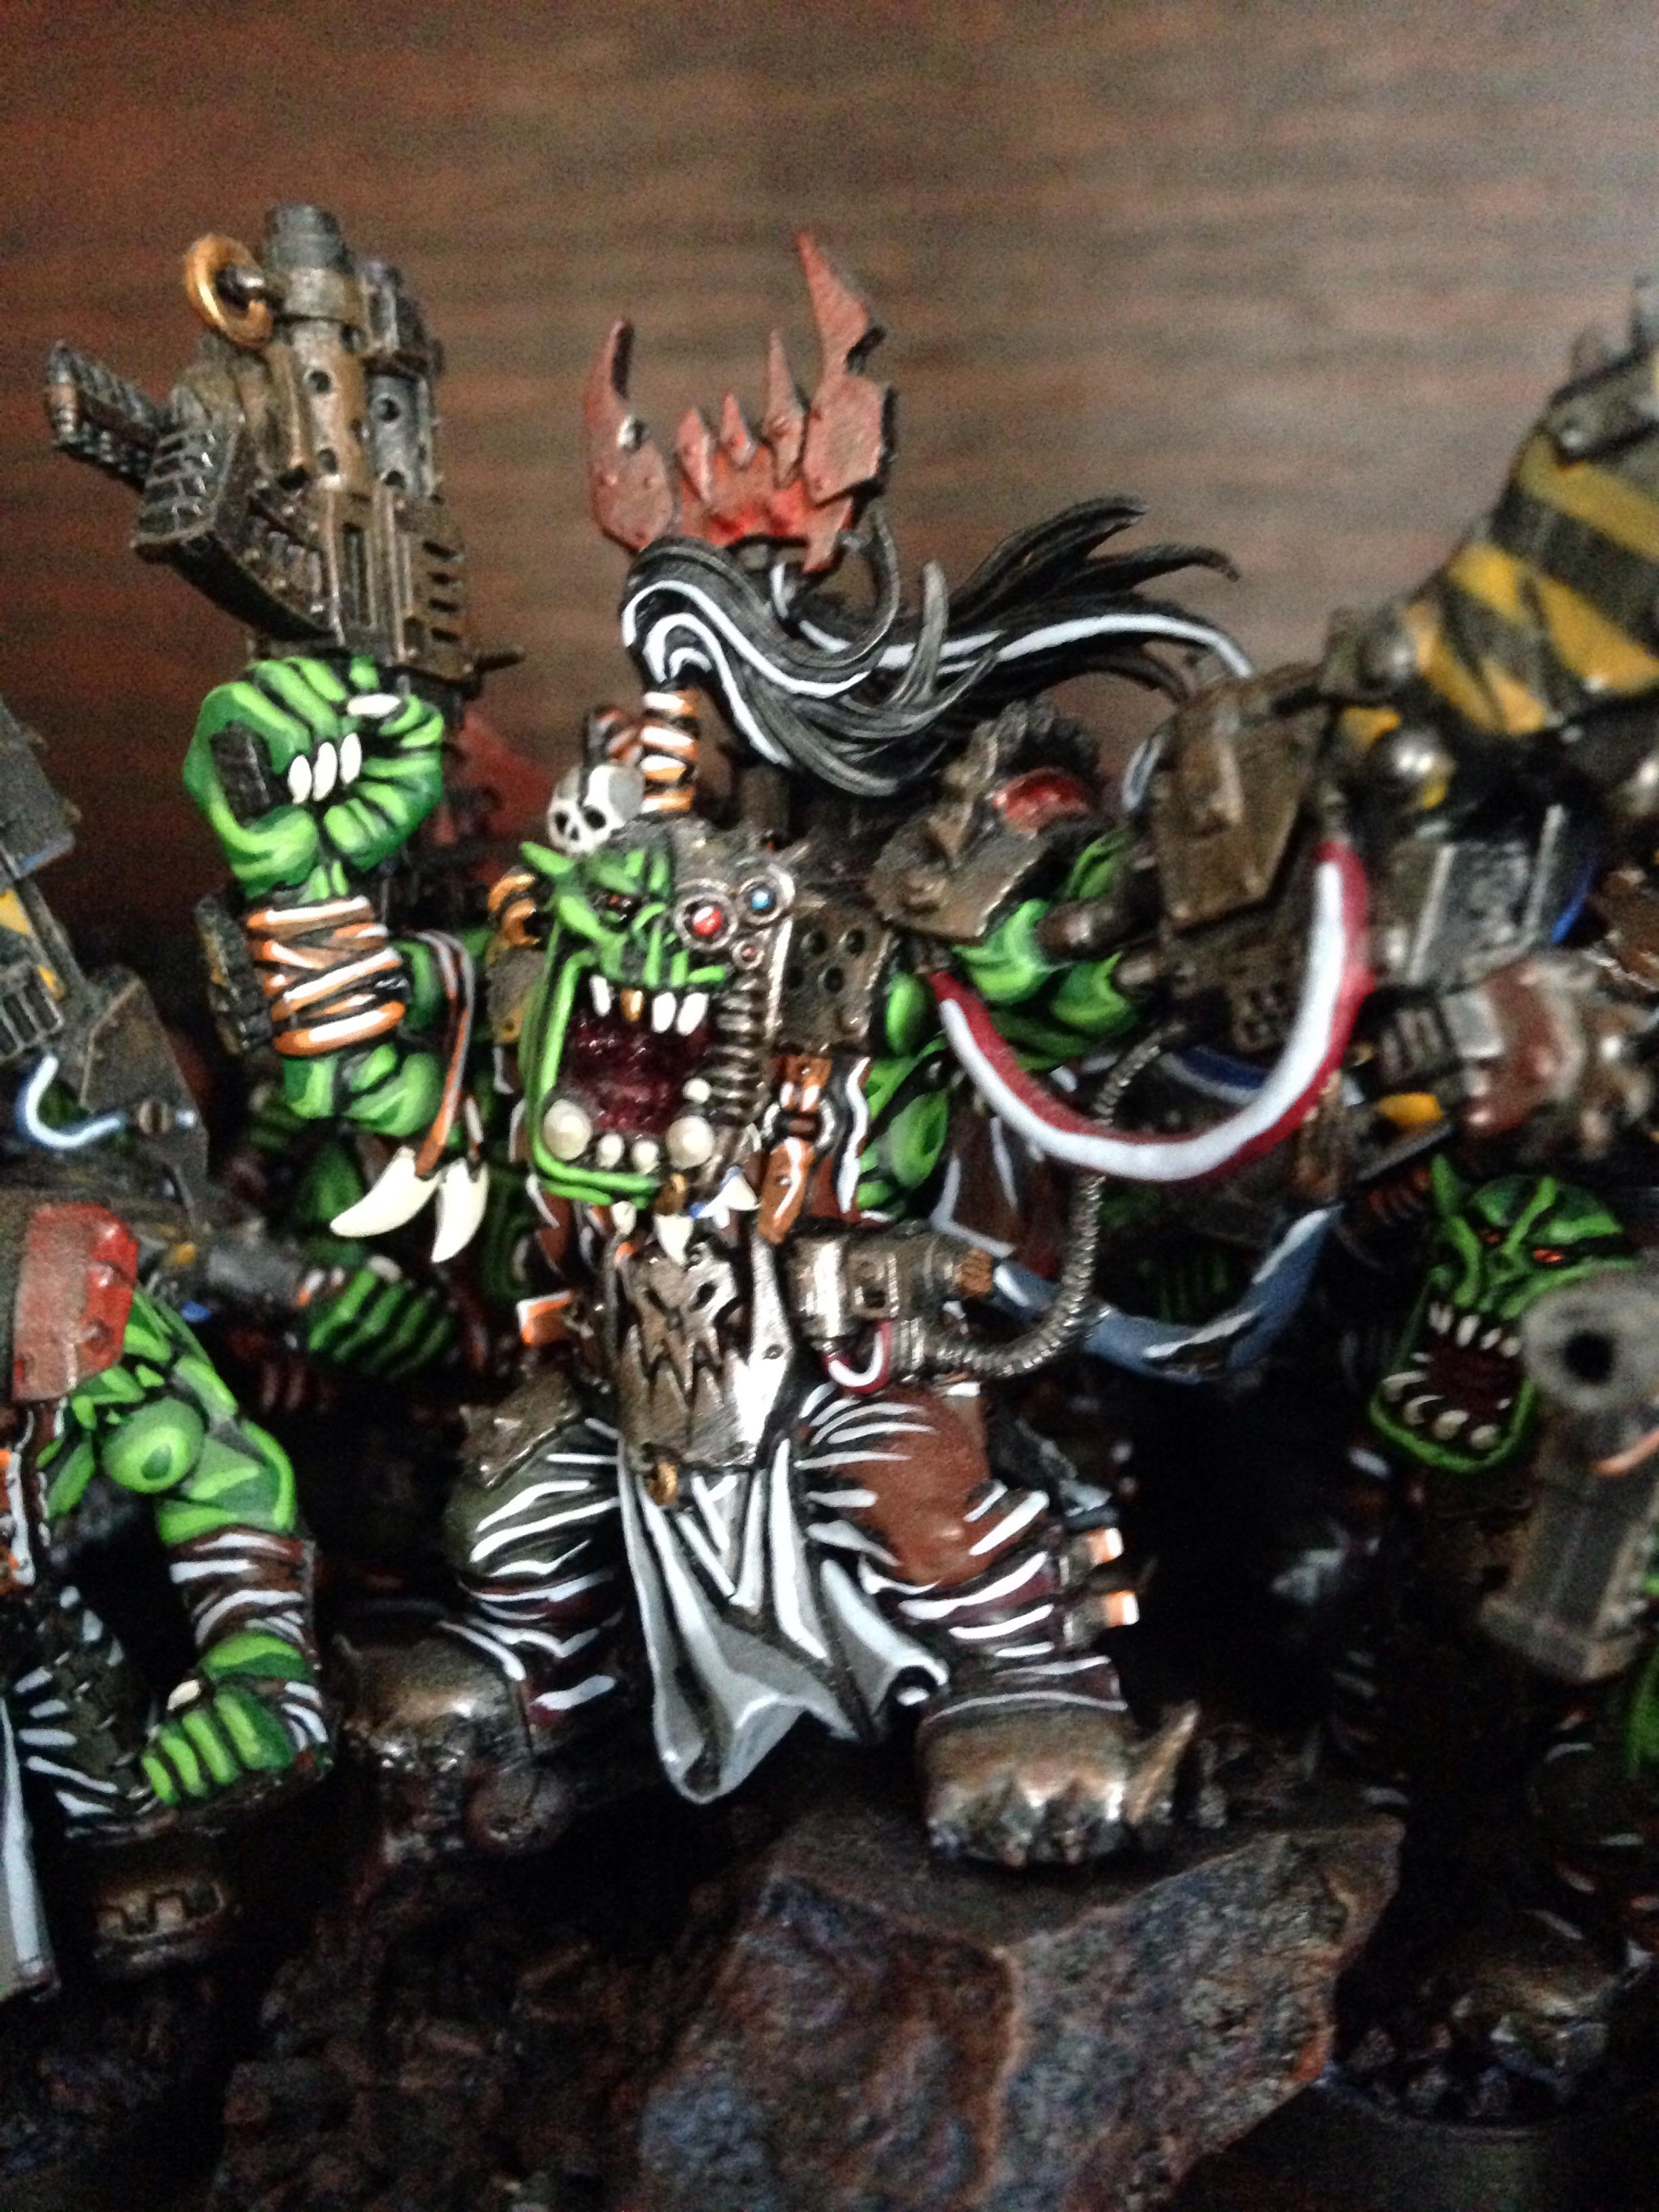 Orks, Power Claw, Warboss